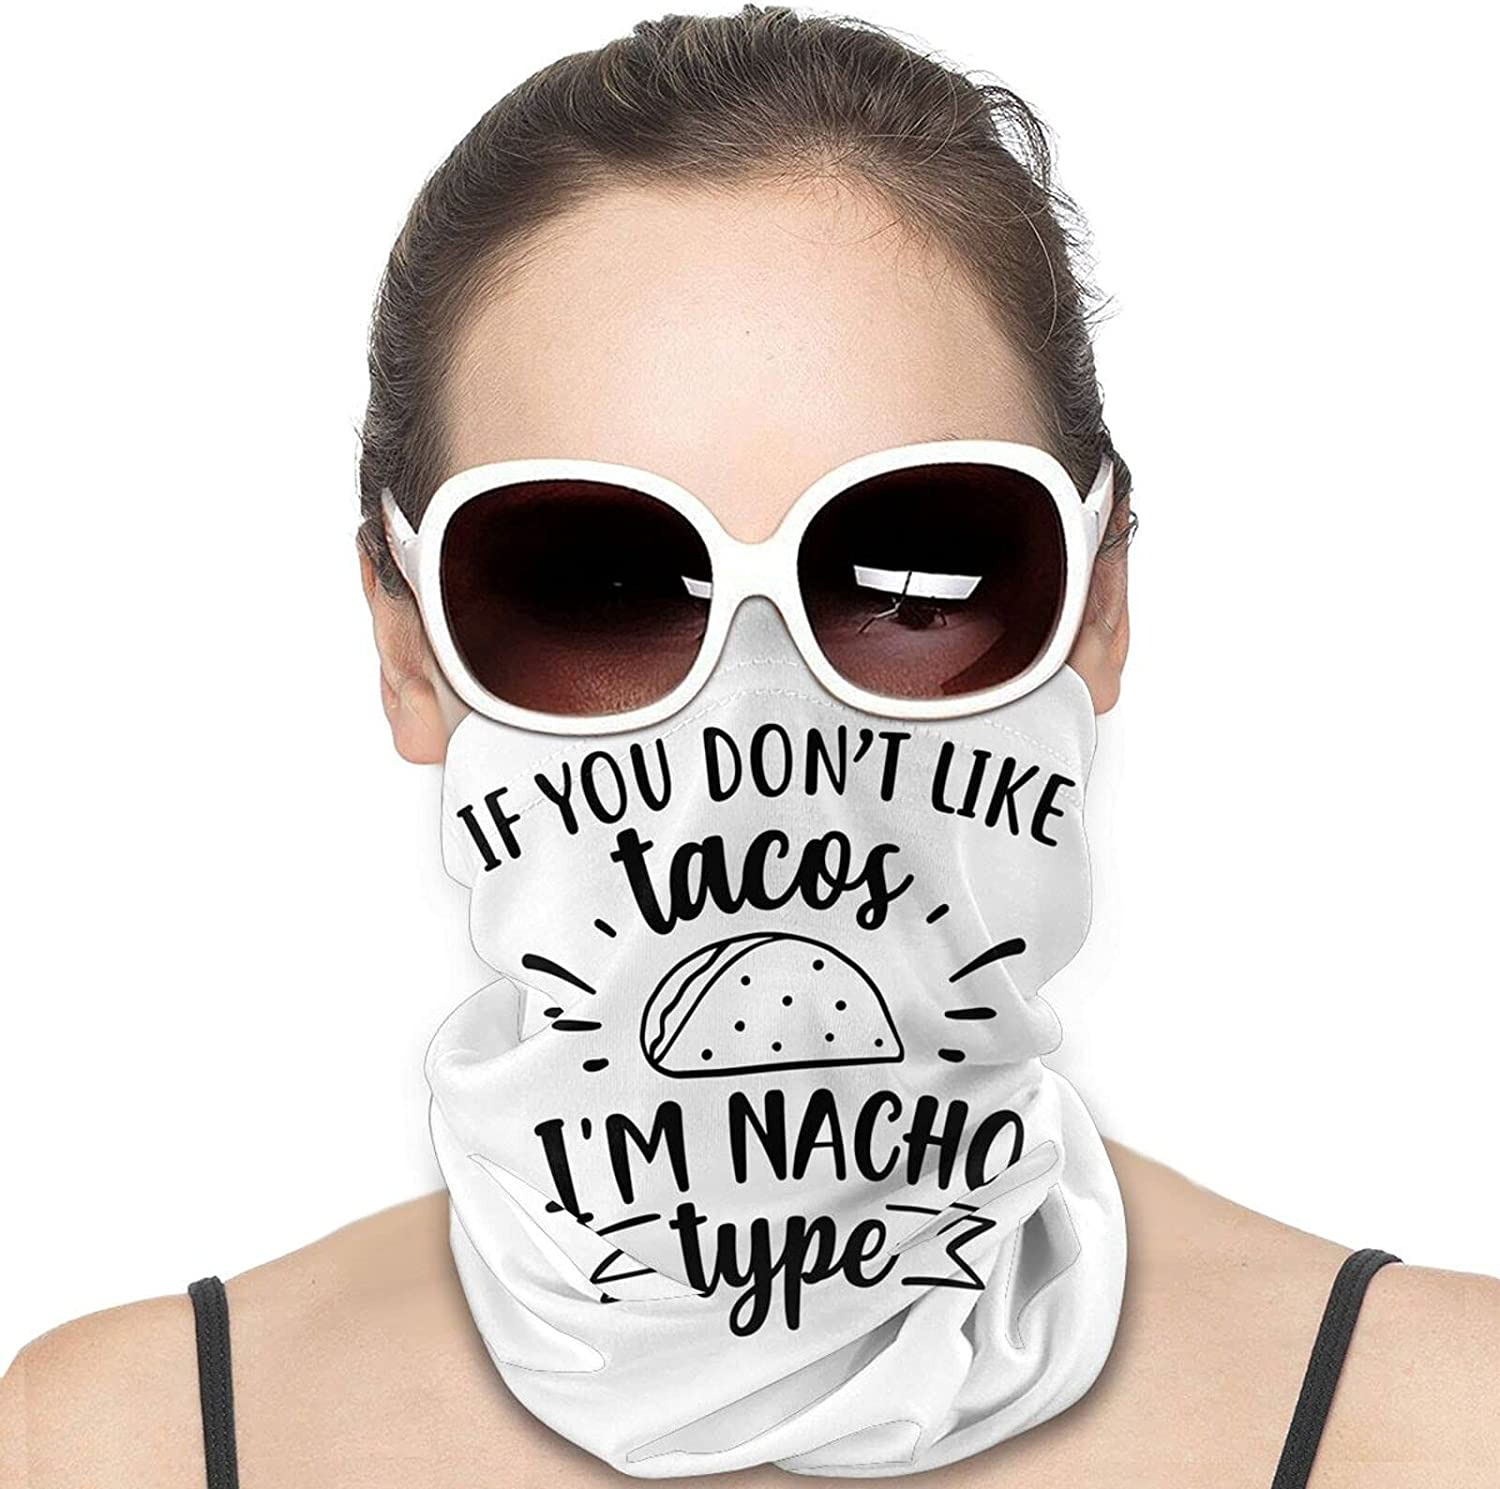 If You Dont Like Nachos Im Not Your Type Round Neck Gaiter Bandnas Face Cover Uv Protection Prevent bask in Ice Scarf Headbands Perfect for Motorcycle Cycling Running Festival Raves Outdoors